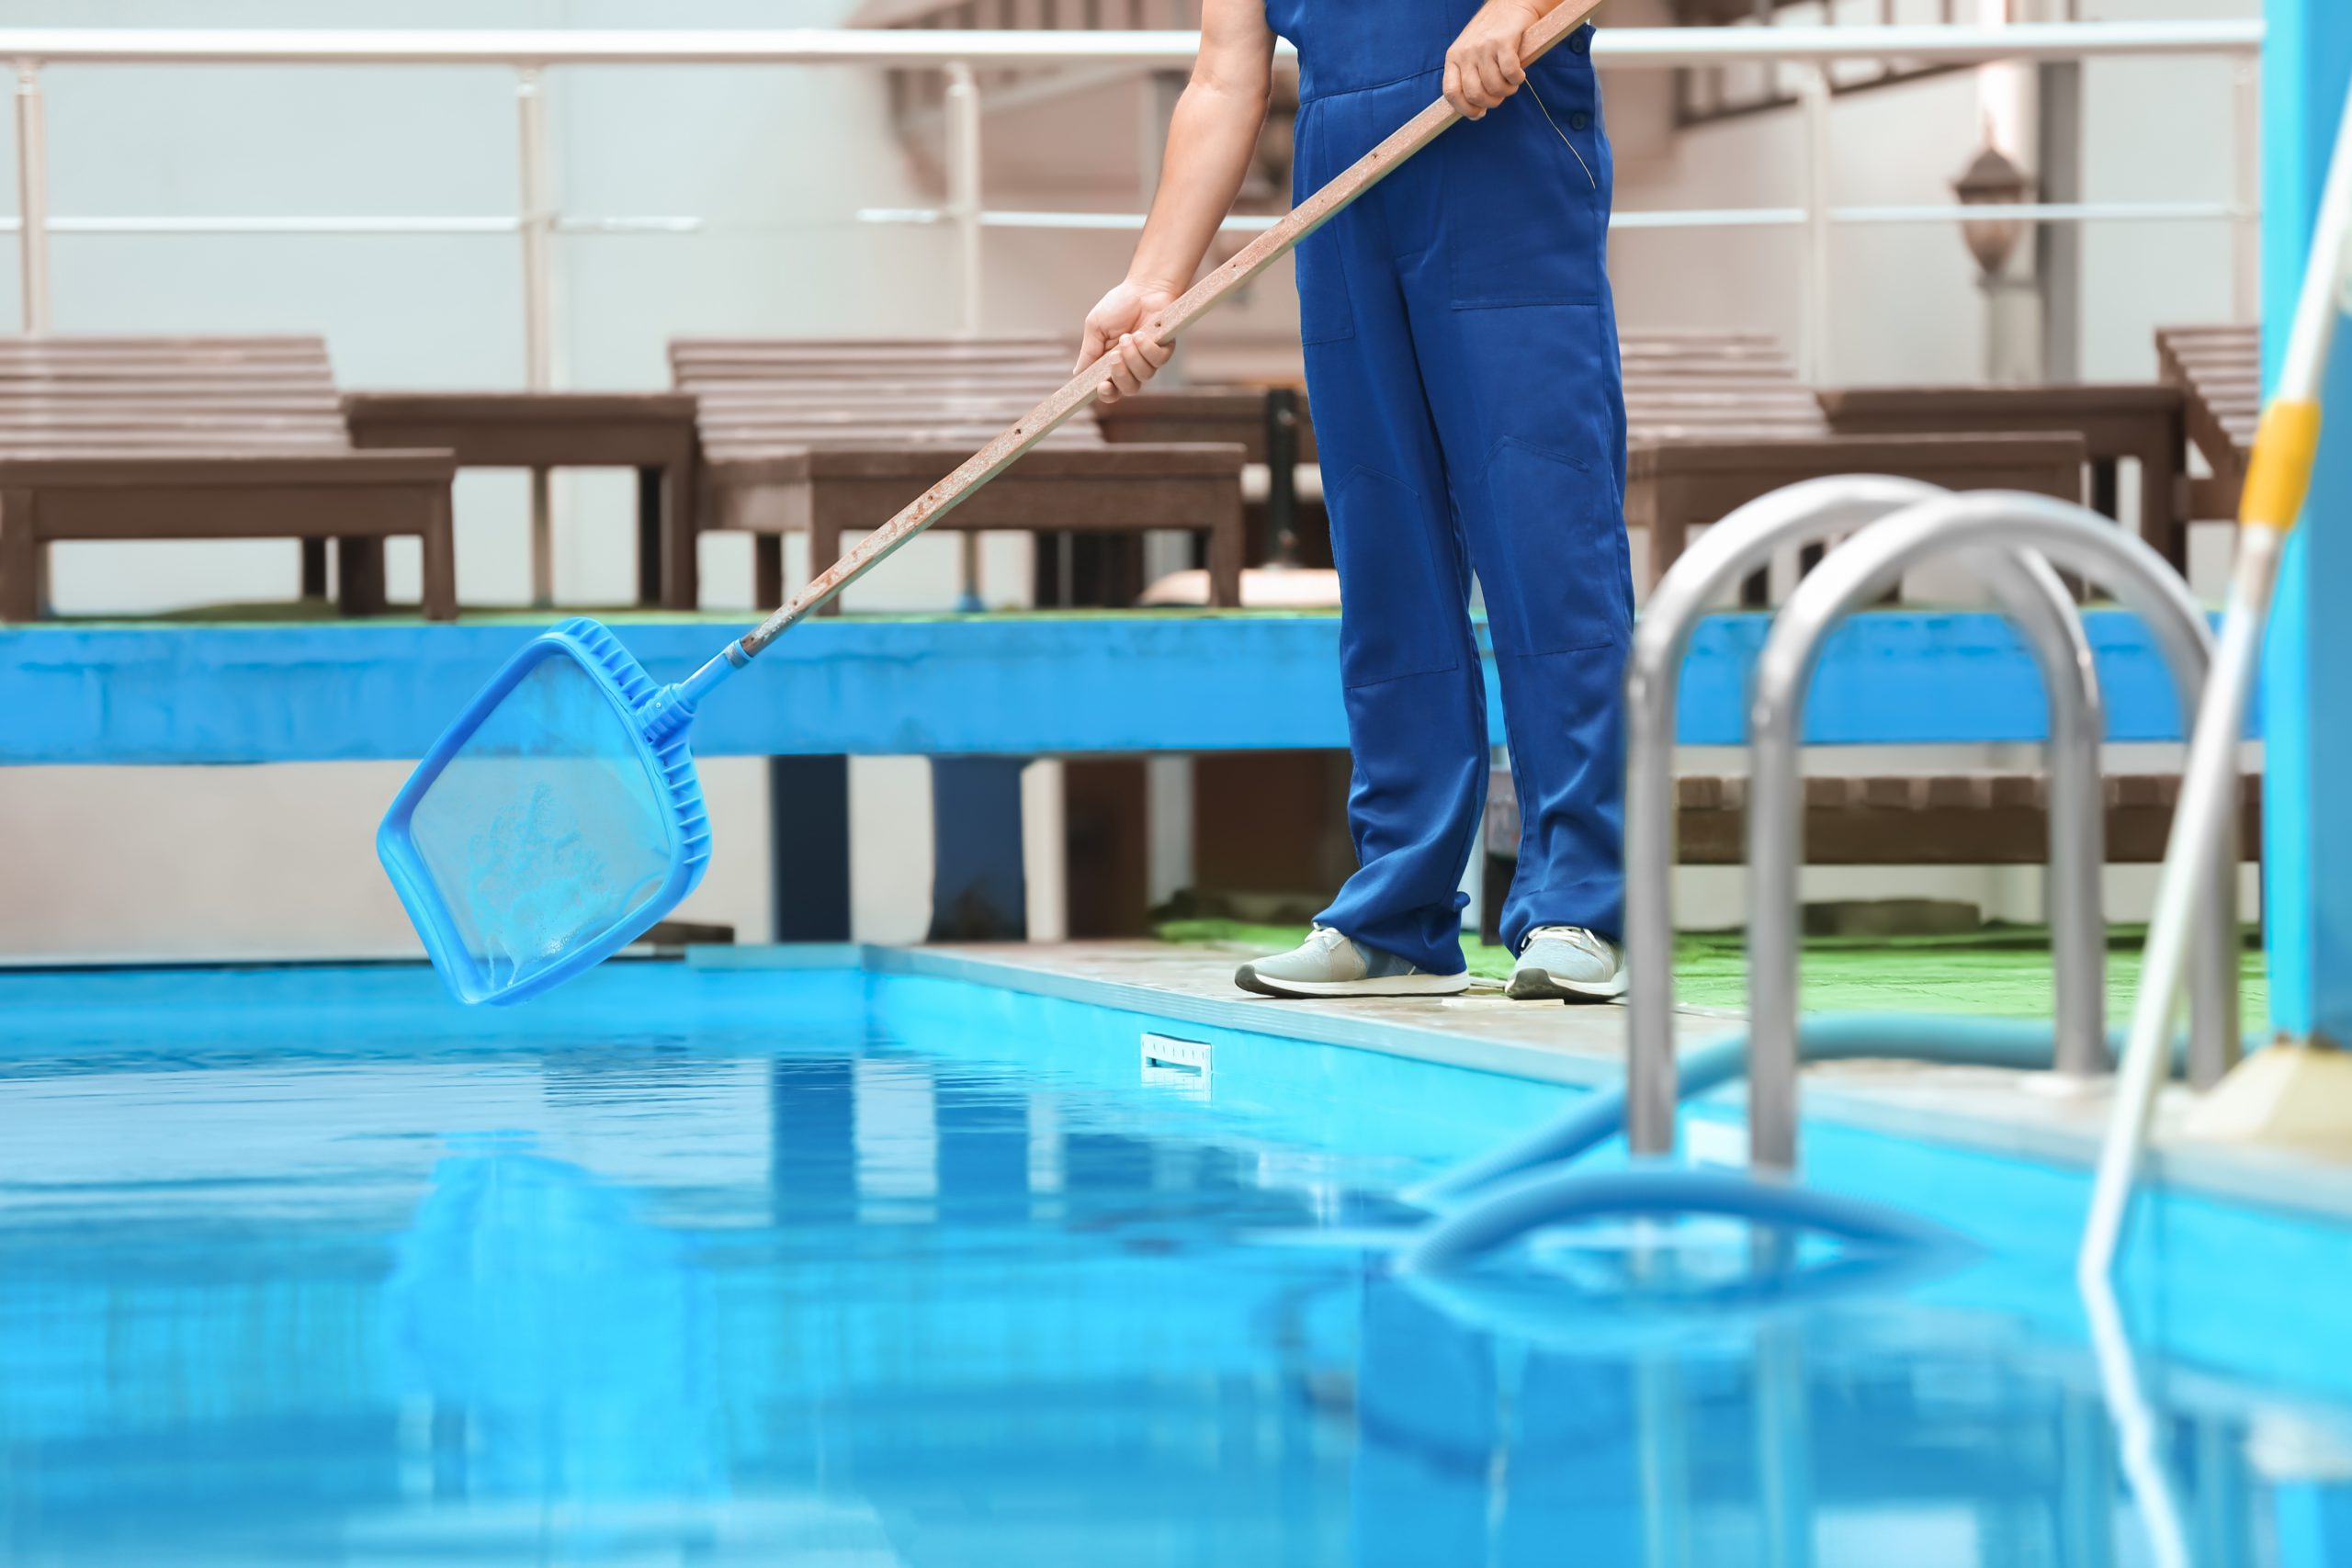 Hiring A Swimming Pool Service: Tips To Consider